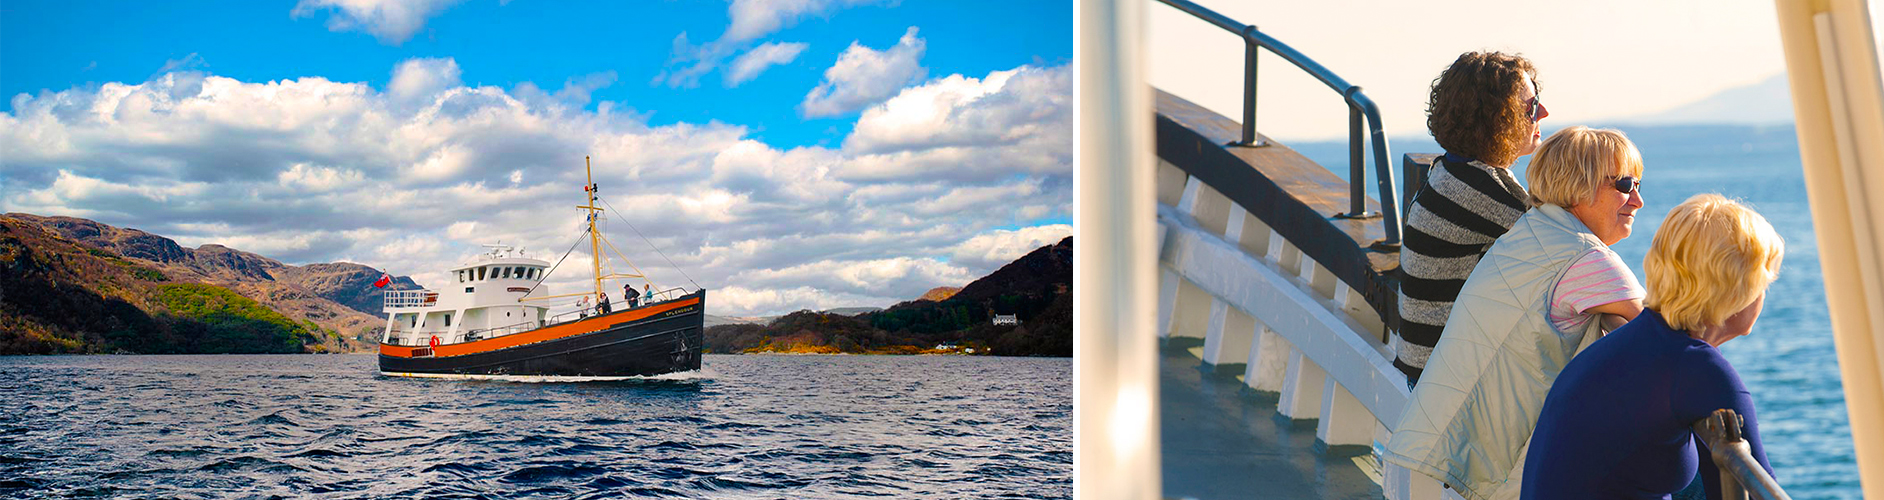 Argyll Cruising|Scottish Cruises|About Us